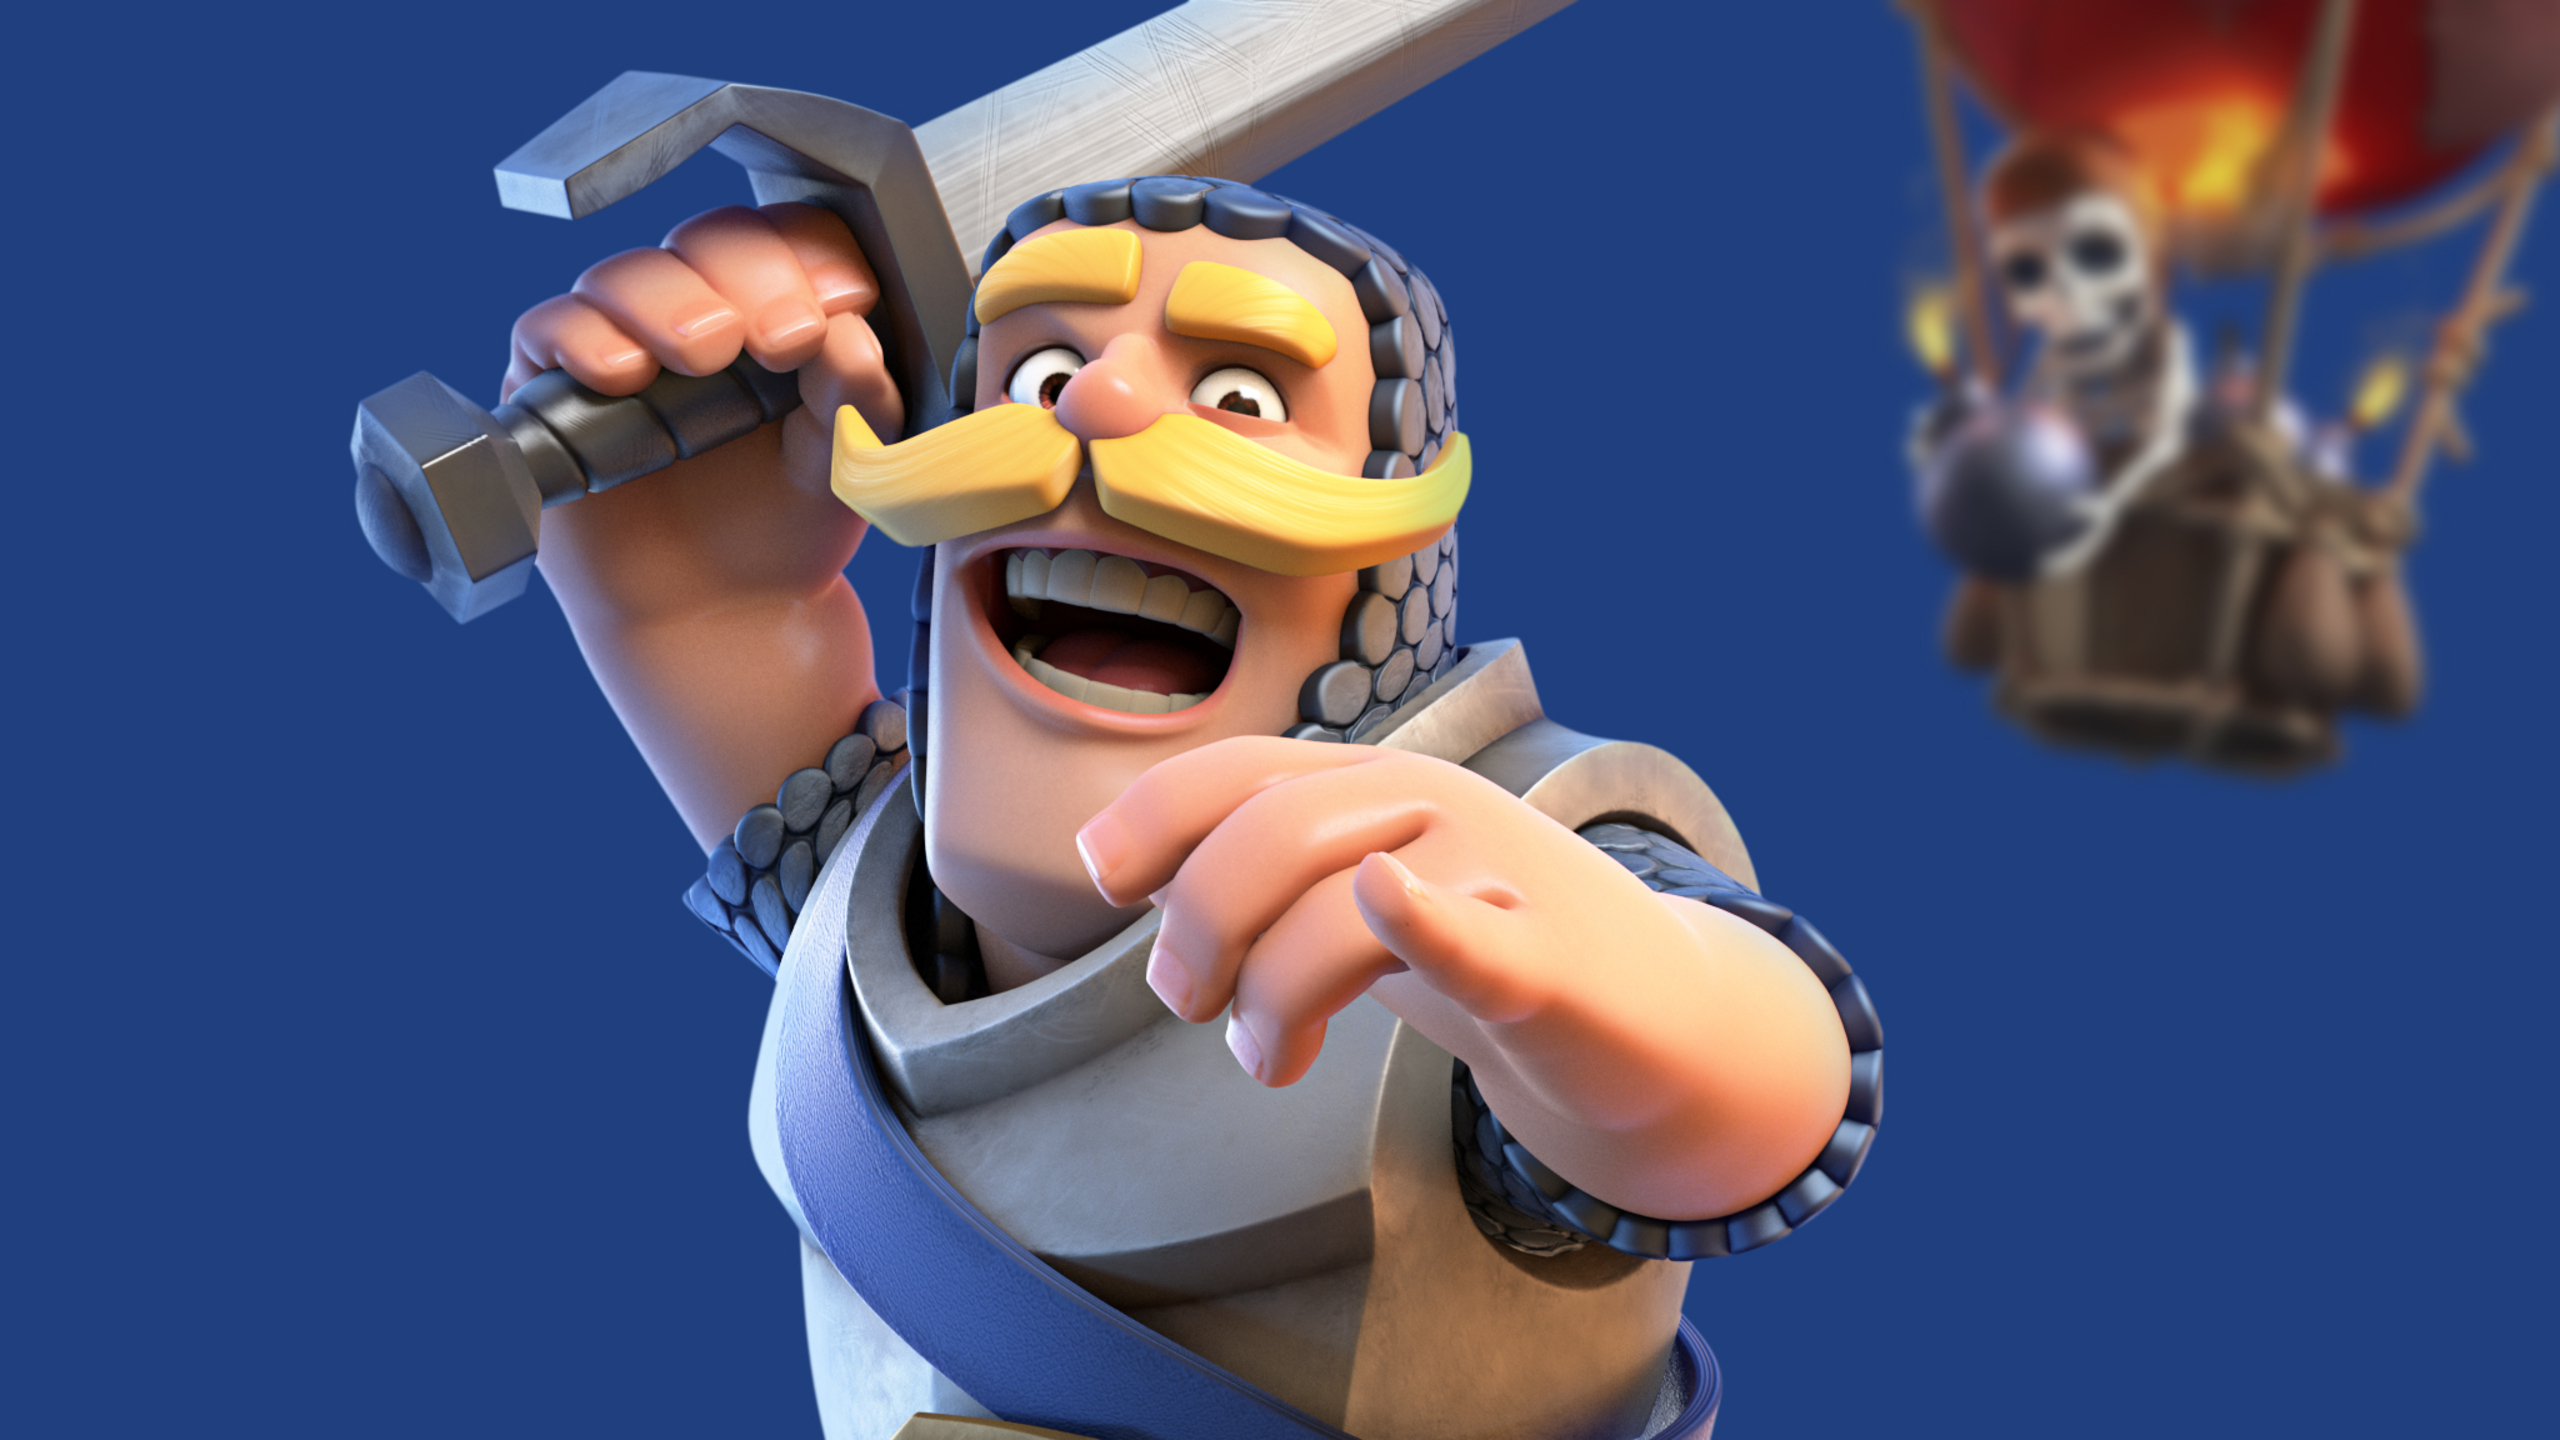 2560x1440 clash royale 1440p resolution hd 4k wallpapers images backgrounds photos and pictures - Clash royale 2560x1440 ...